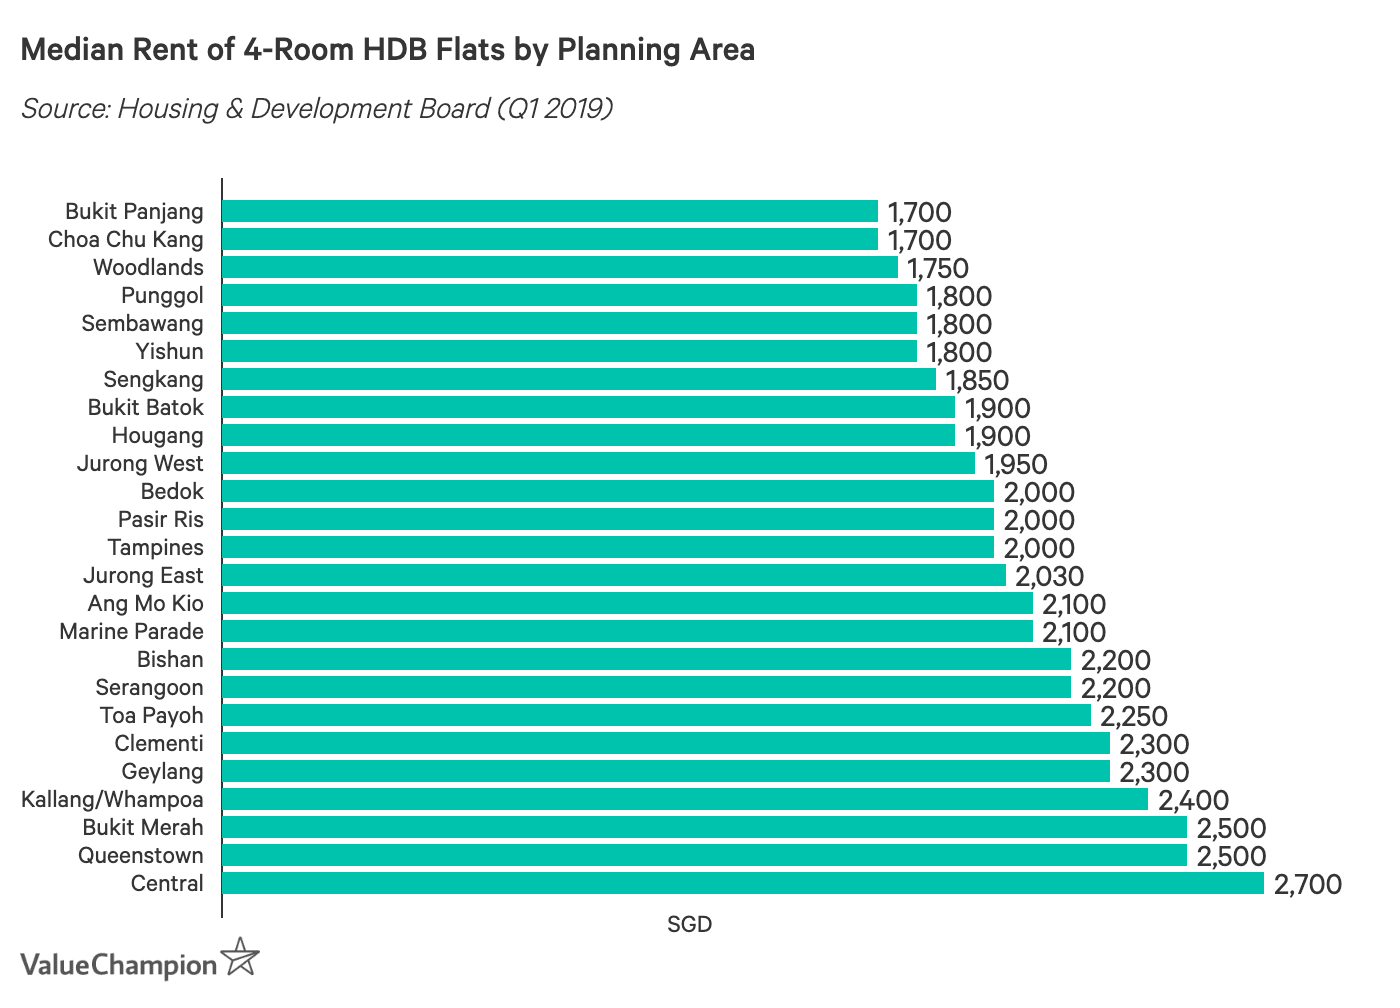 Median Rent of 4-Room HDB Flats by Planning Area